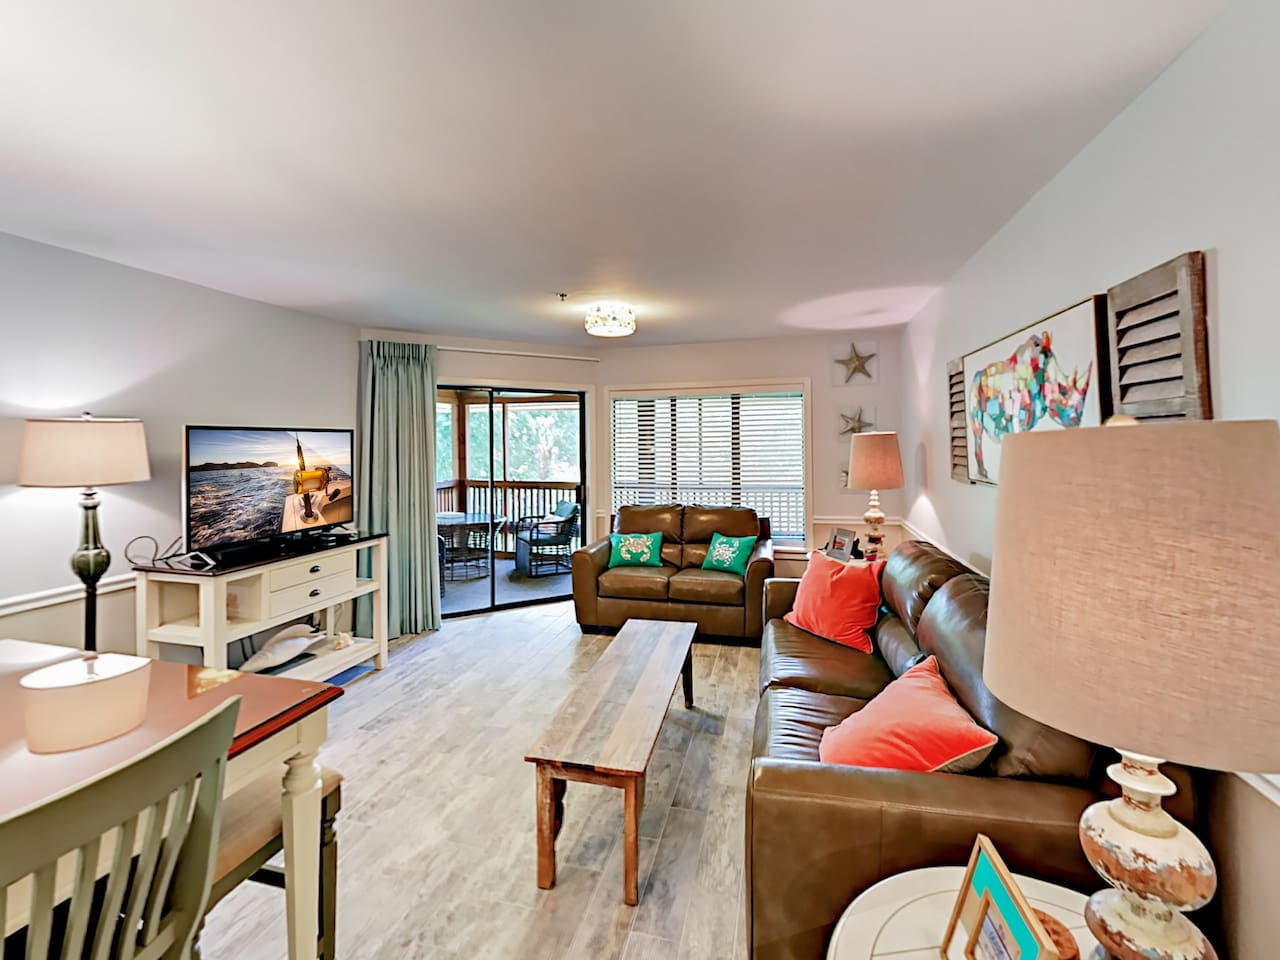 Welcome to Myrtle Beach! Your lakeside villa is professionally managed by TurnKey Vacation Rentals.